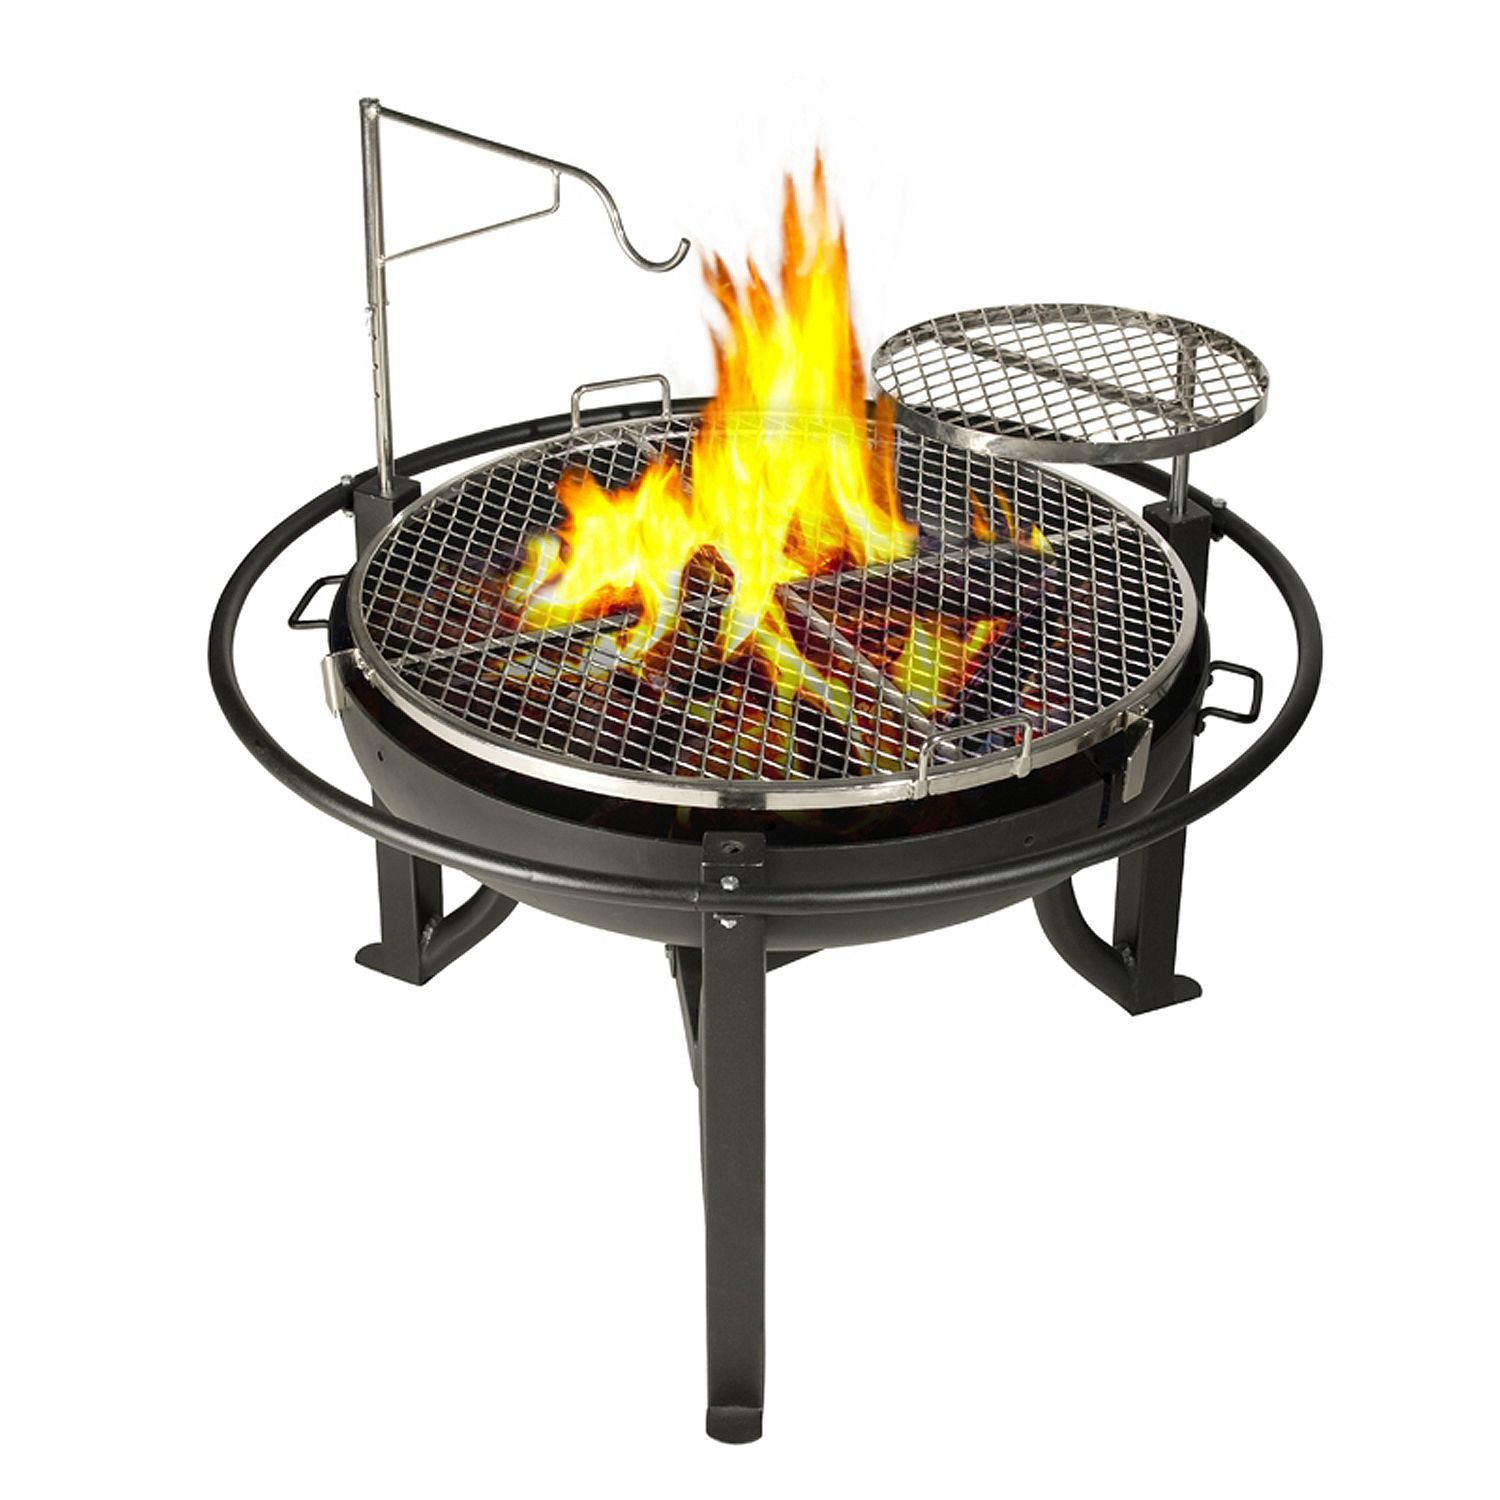 cowboy grills open pit grill sam s club fun toys pinterest